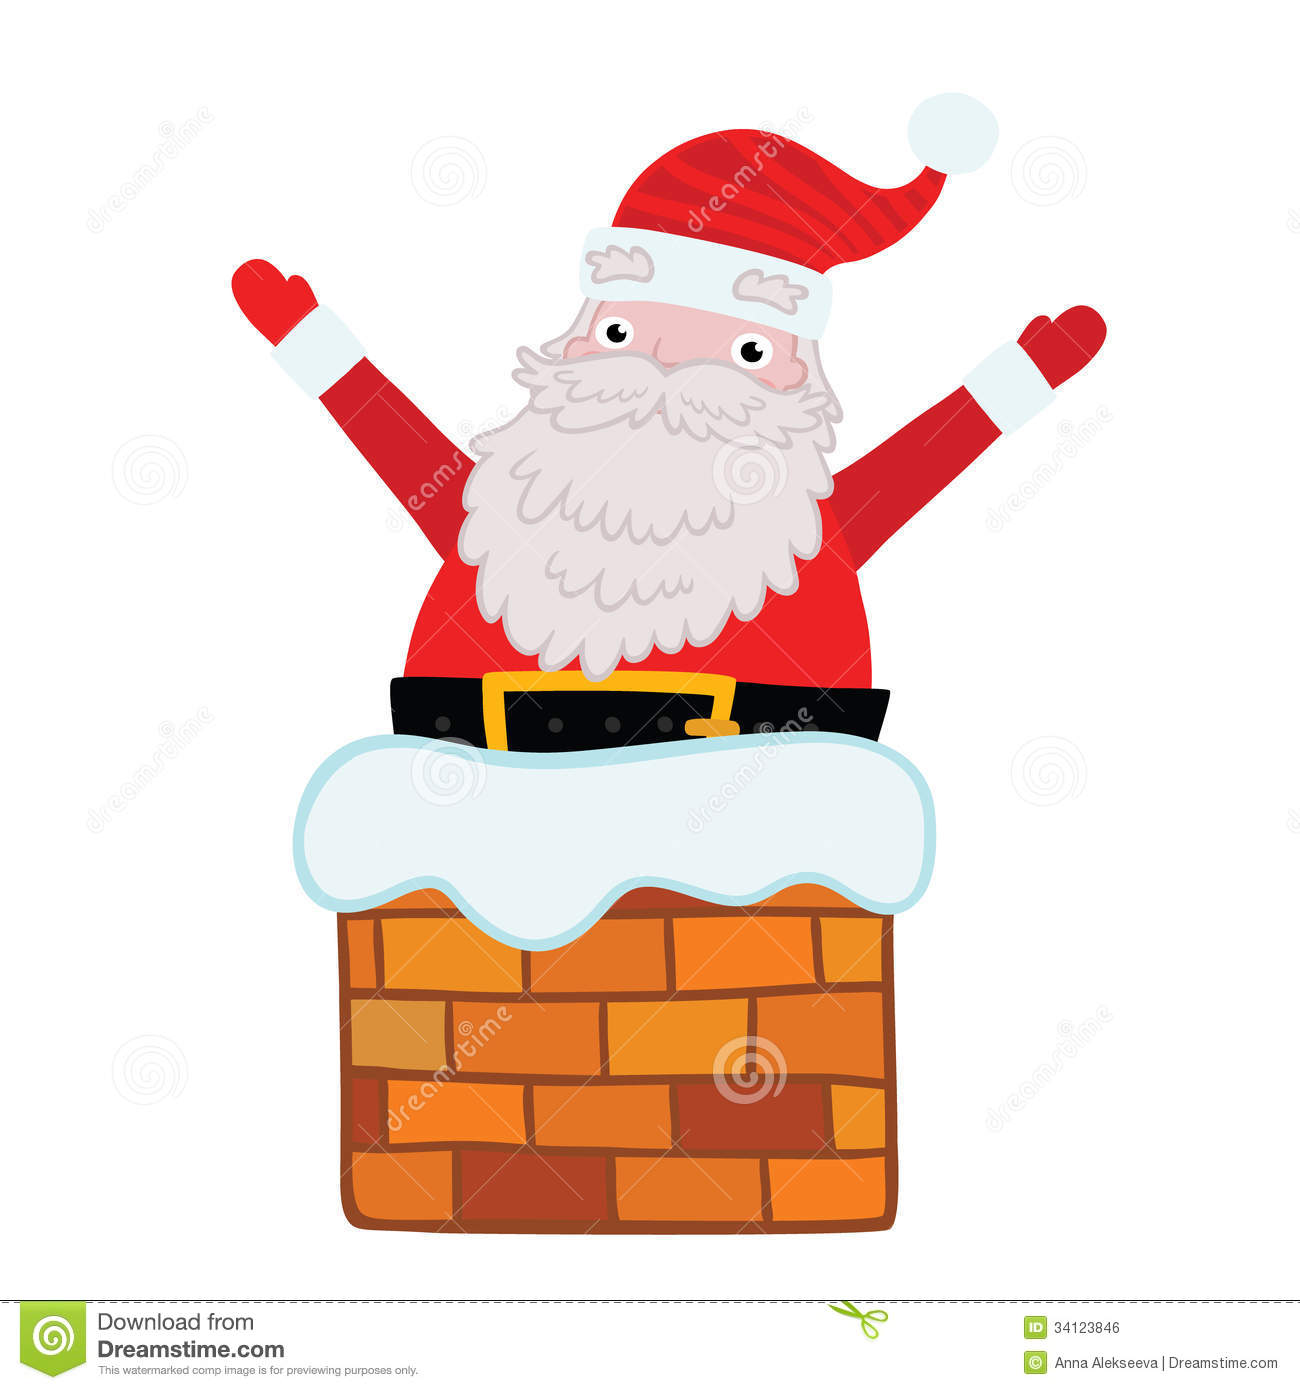 Santa claus chimney clipart 9 » Clipart Station.